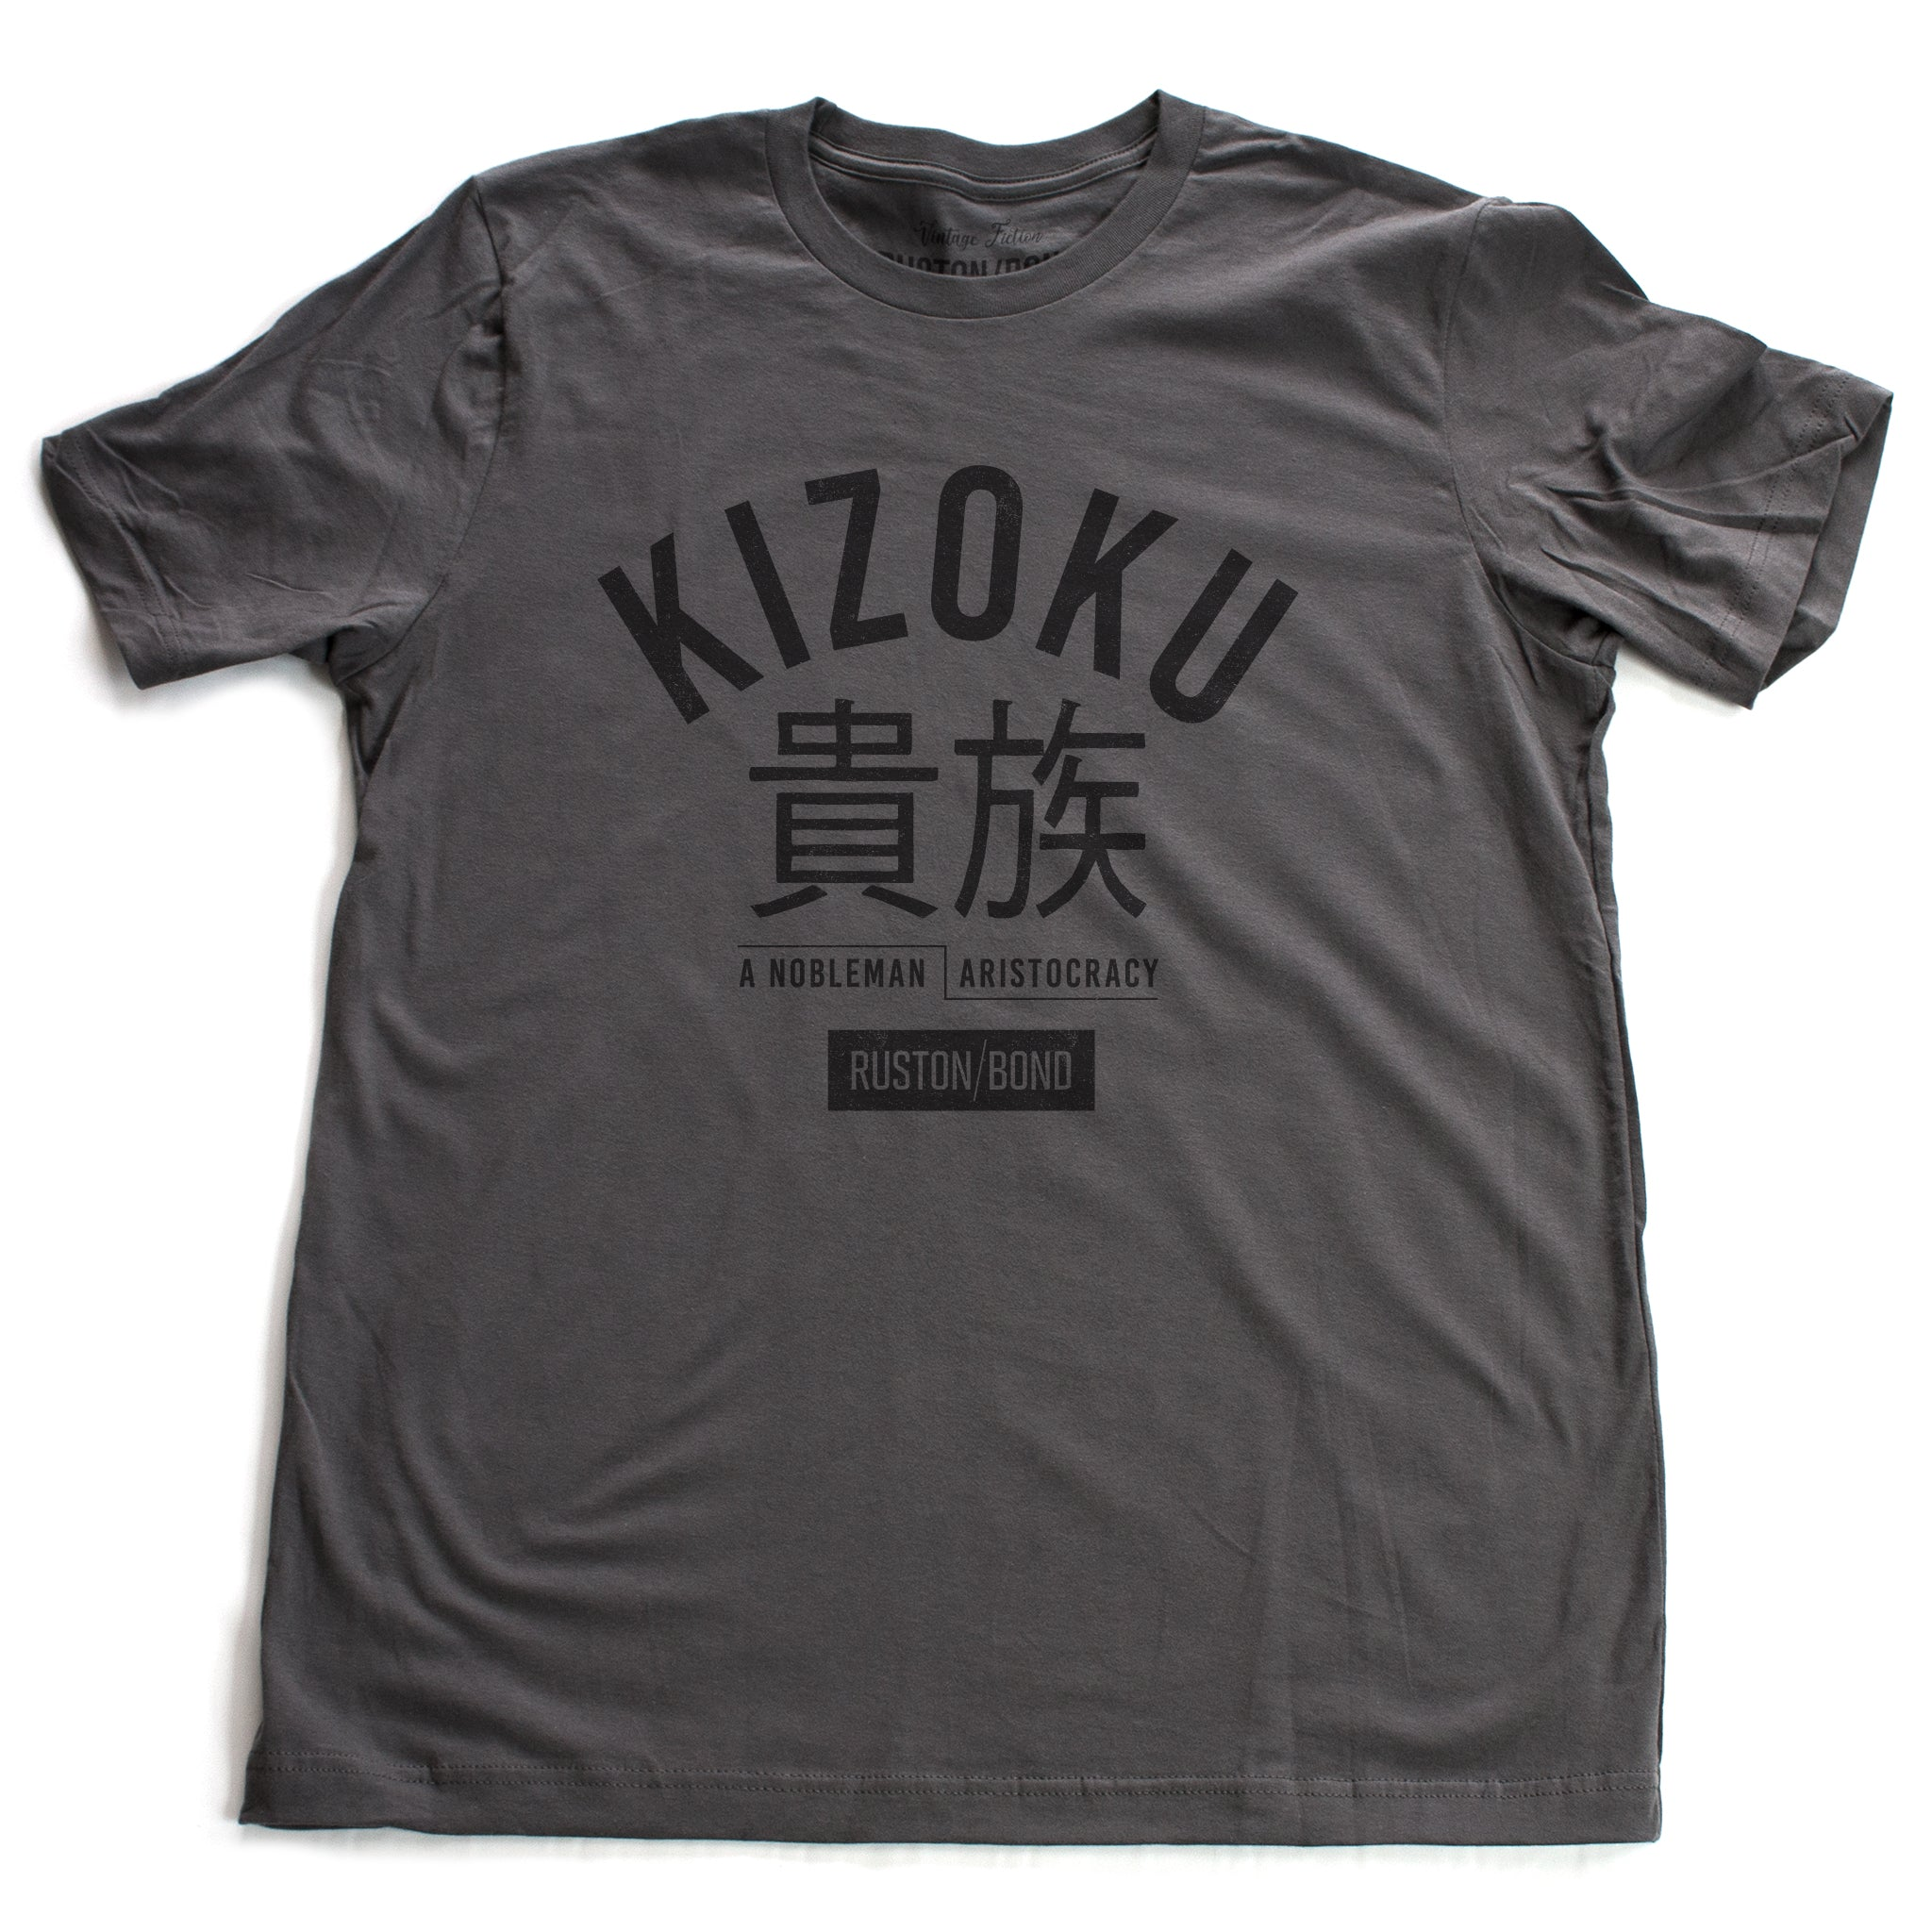 "A retro fashion t-shirt in Asphalt Gray with the bold typographic of the Japanese word ""KIZOKU"" and ""a nobleman / aristocracy"" below the Japanese characters. By the fashion brand Ruston/Bond, from wolfsaint.net."